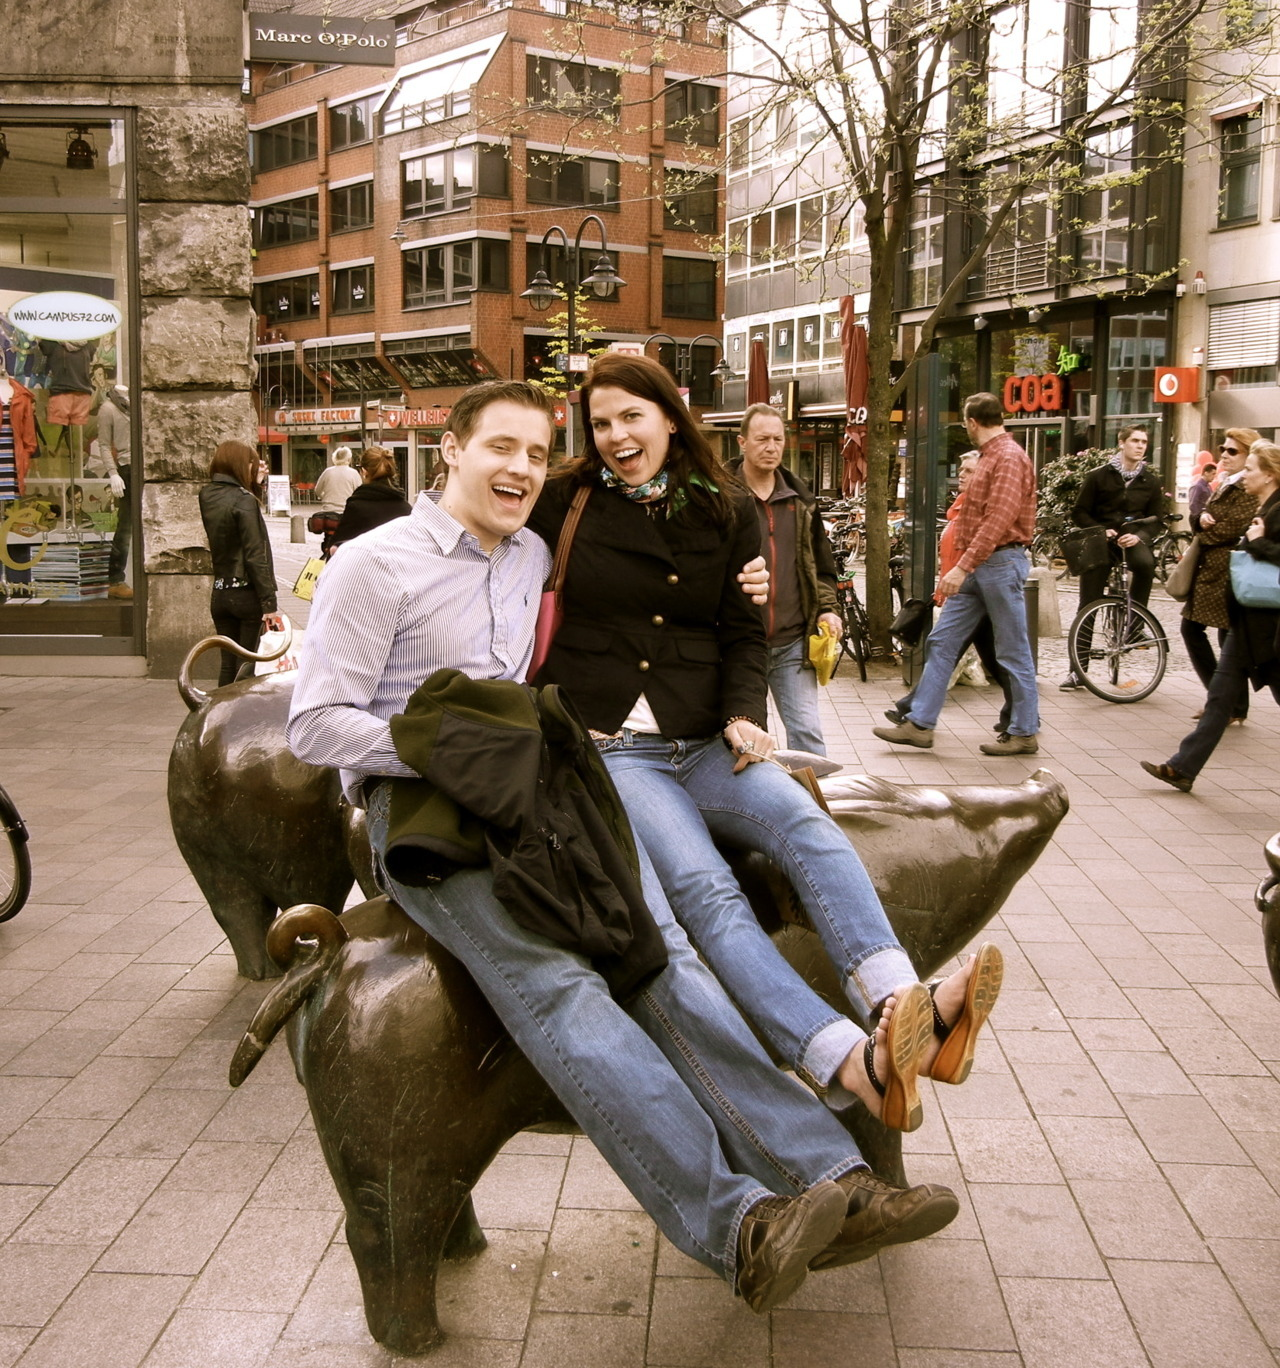 so apparently pigs are important in Bremen. So we sat on them.